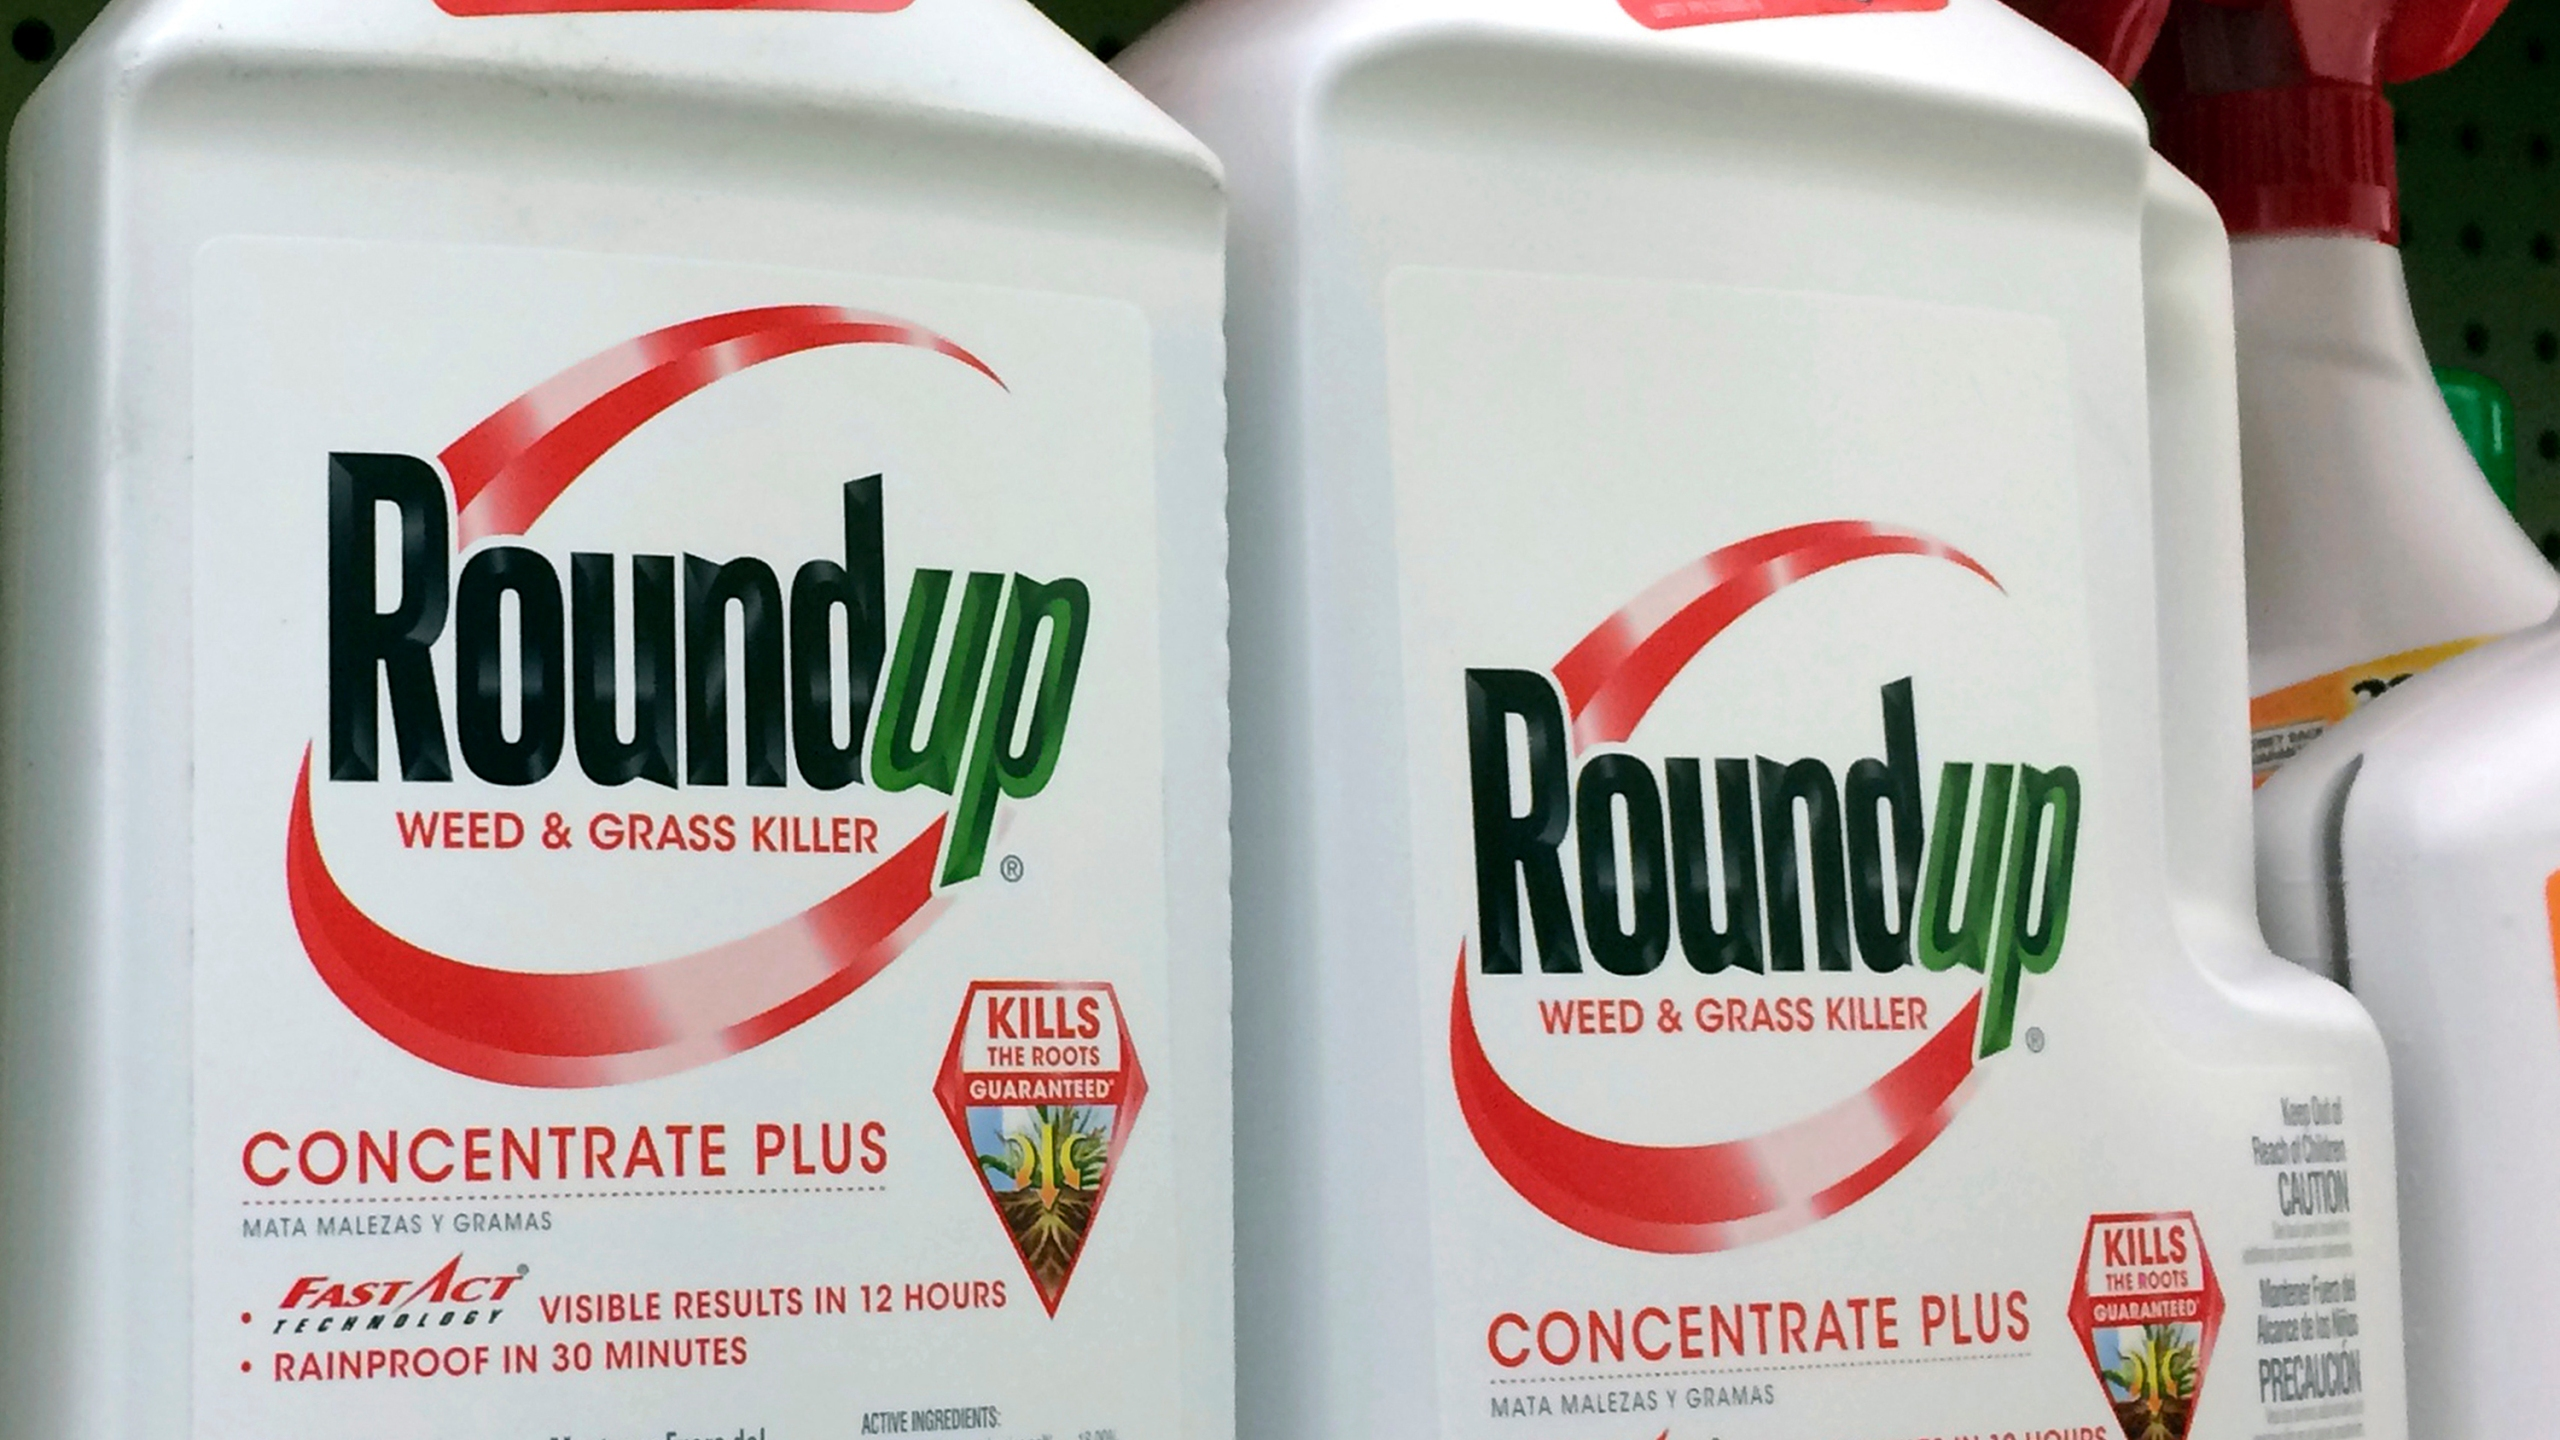 Roundup_Weed_Killer_Cancer_14698-159532.jpg45358393